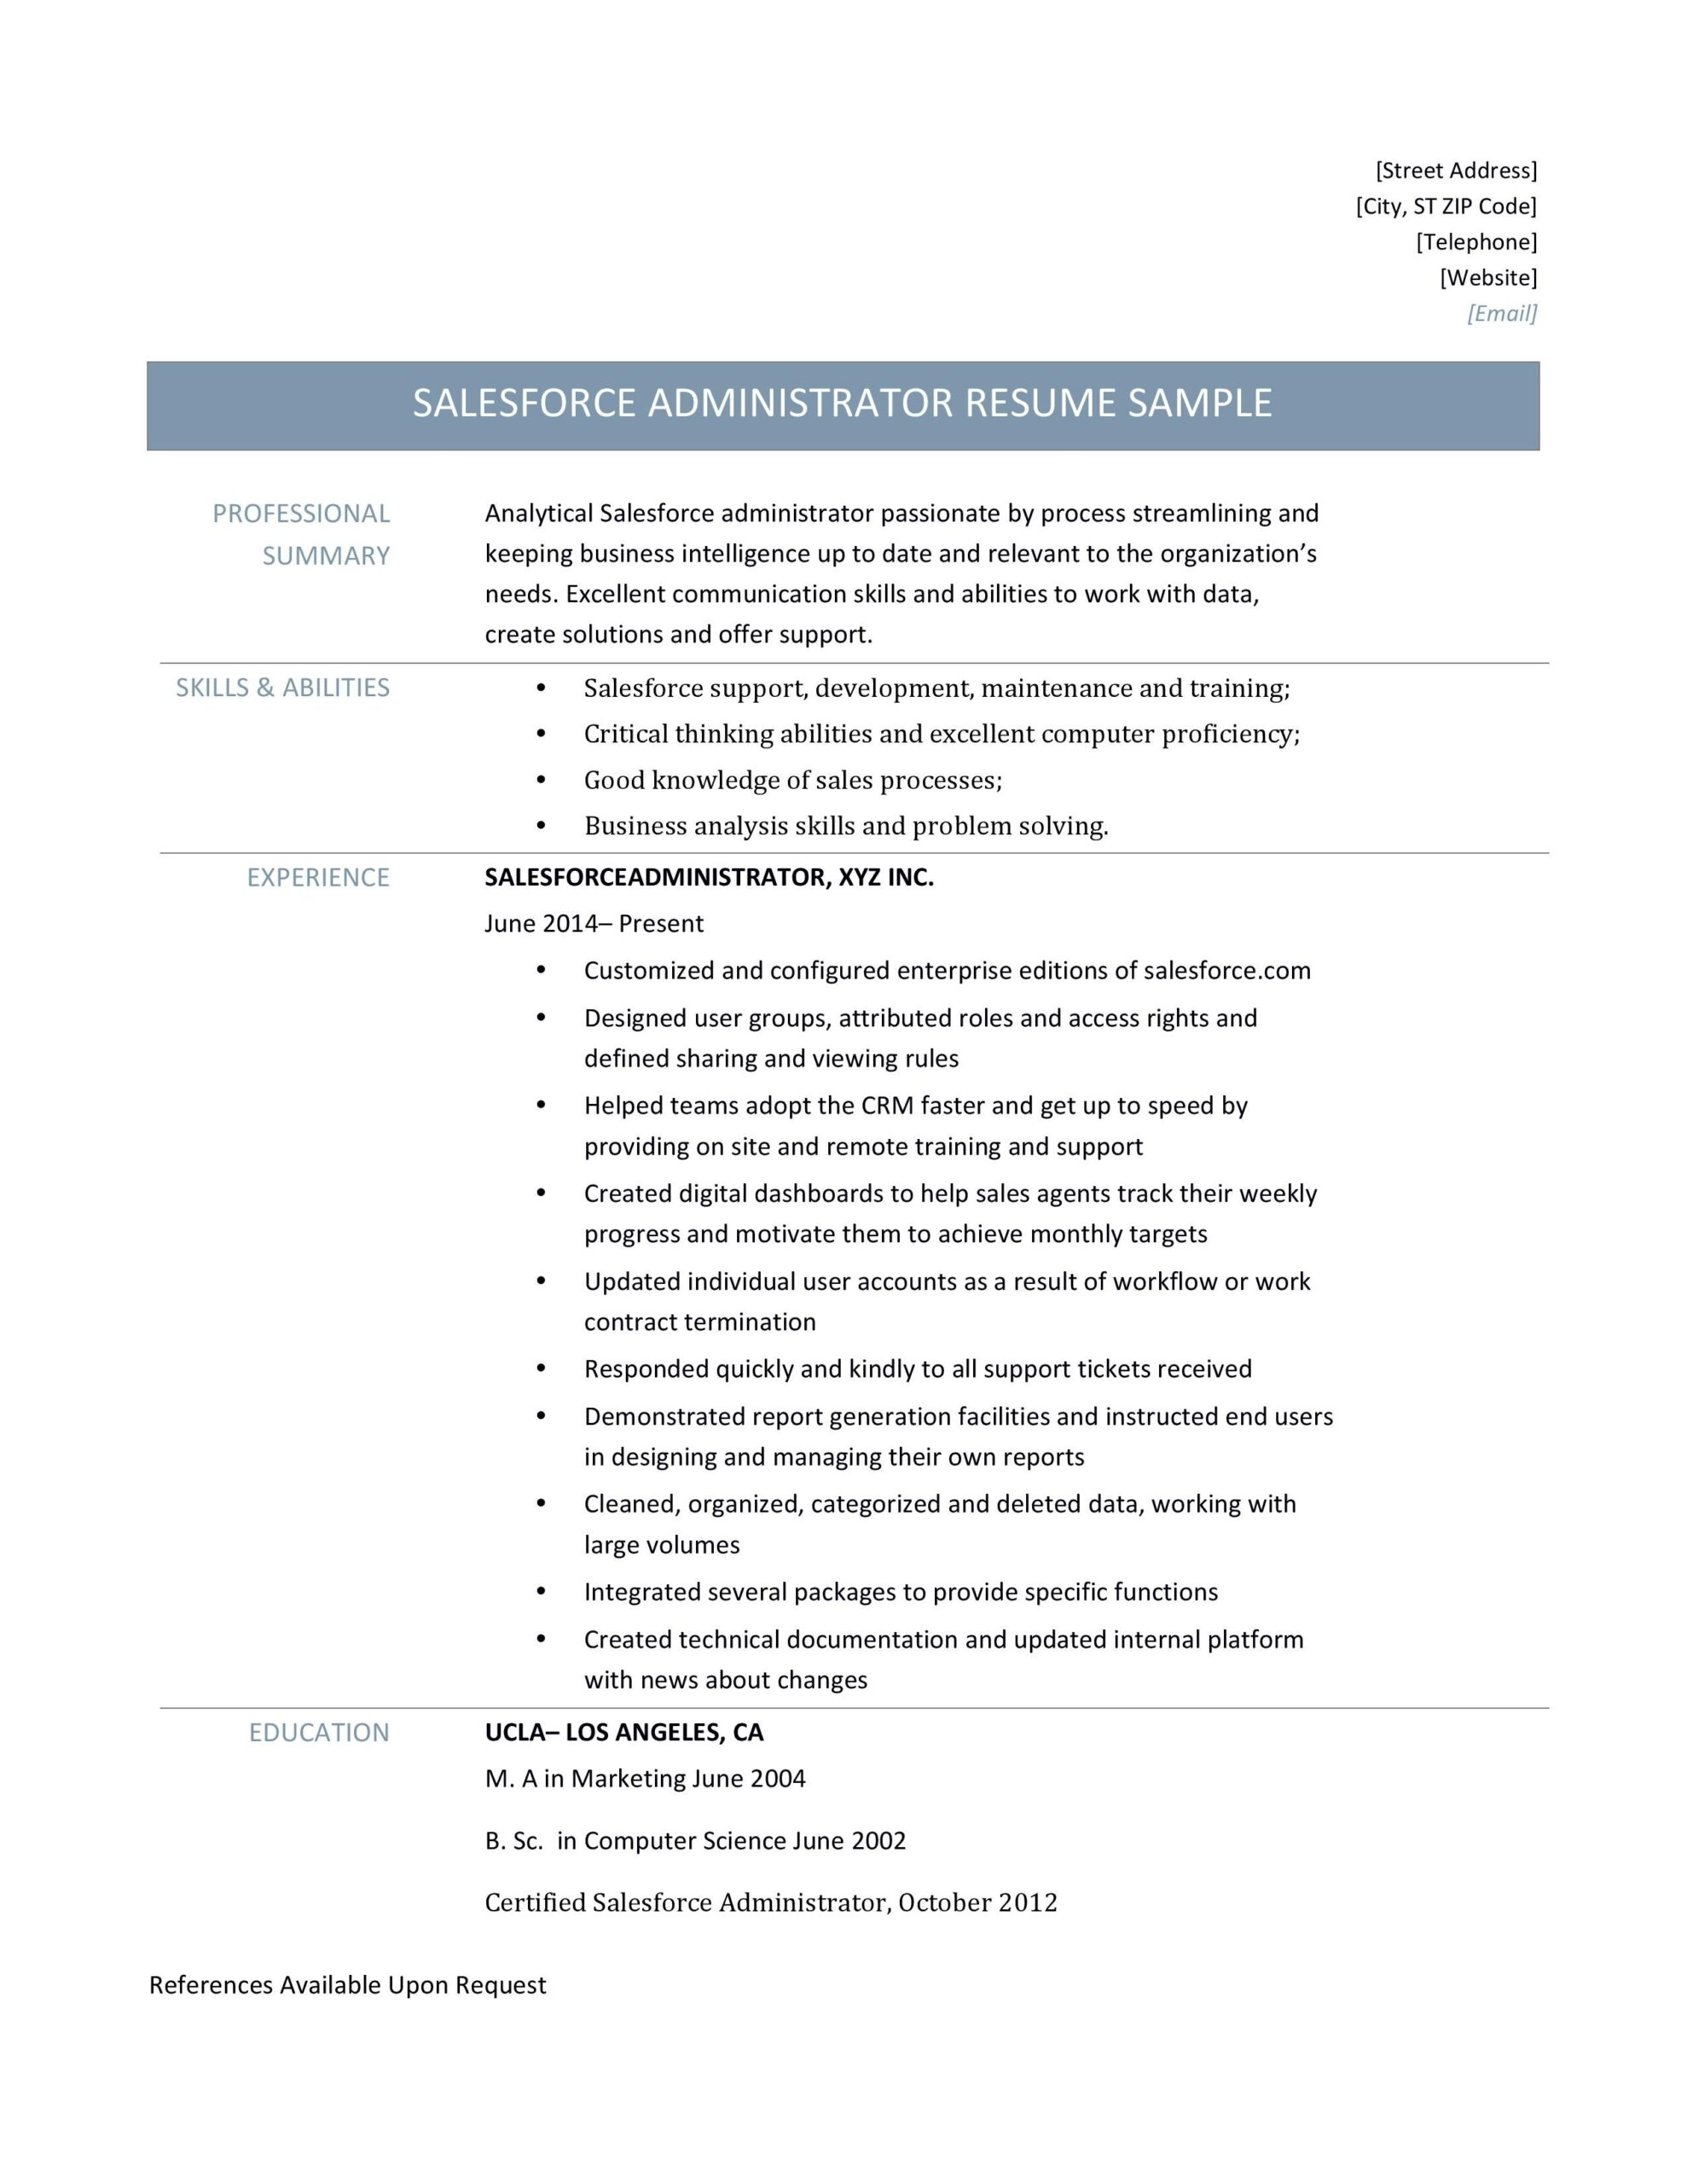 force administrator resume template salesforce examples sample for dashboard genius Resume Sample Resume For Salesforce Administrator